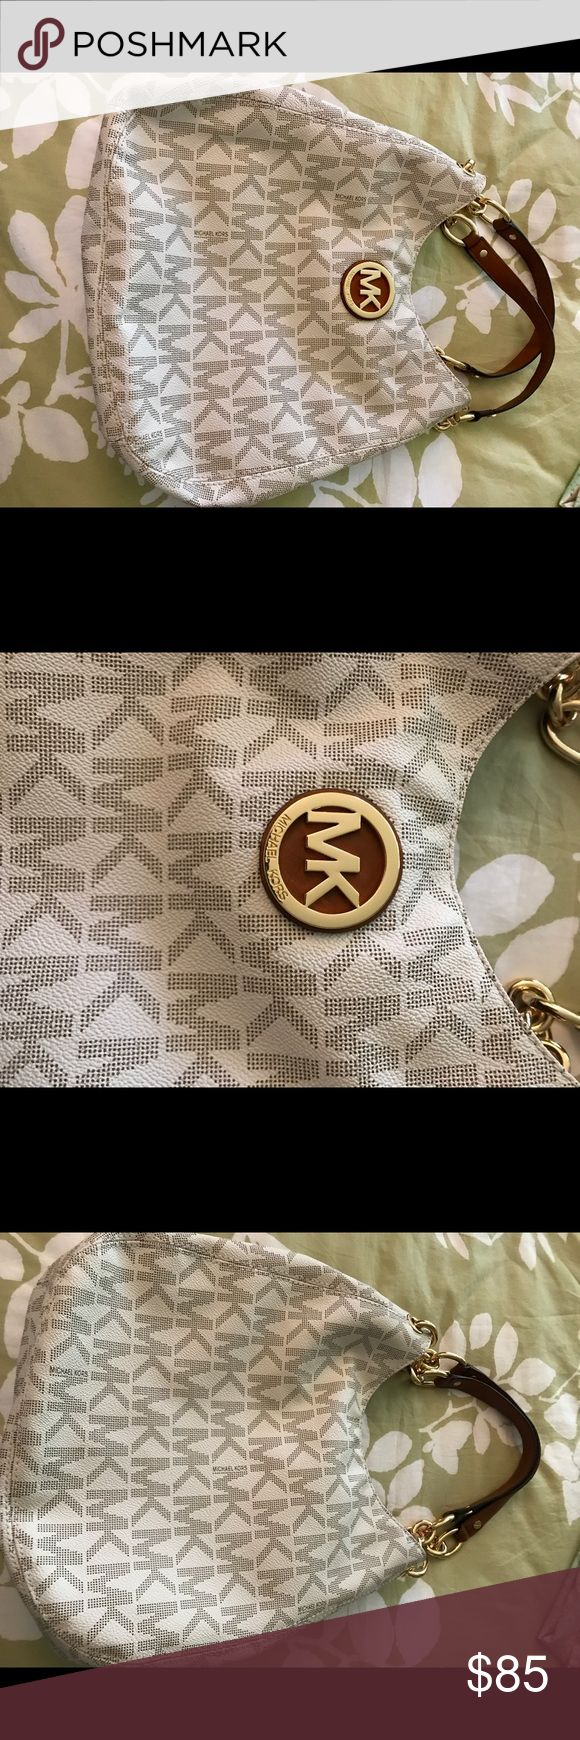 Michael Kors purse MK purse that is white with brown lettering. Medium sized bag that can fit on your shoulders. Only used it once to match an outfit. It's in perfect condition. Comes from a smoke free and animal free home. It is on the heavy side because of the handles but it fits a ton of stuff because it has three sections. Michael Kors Bags Shoulder Bags